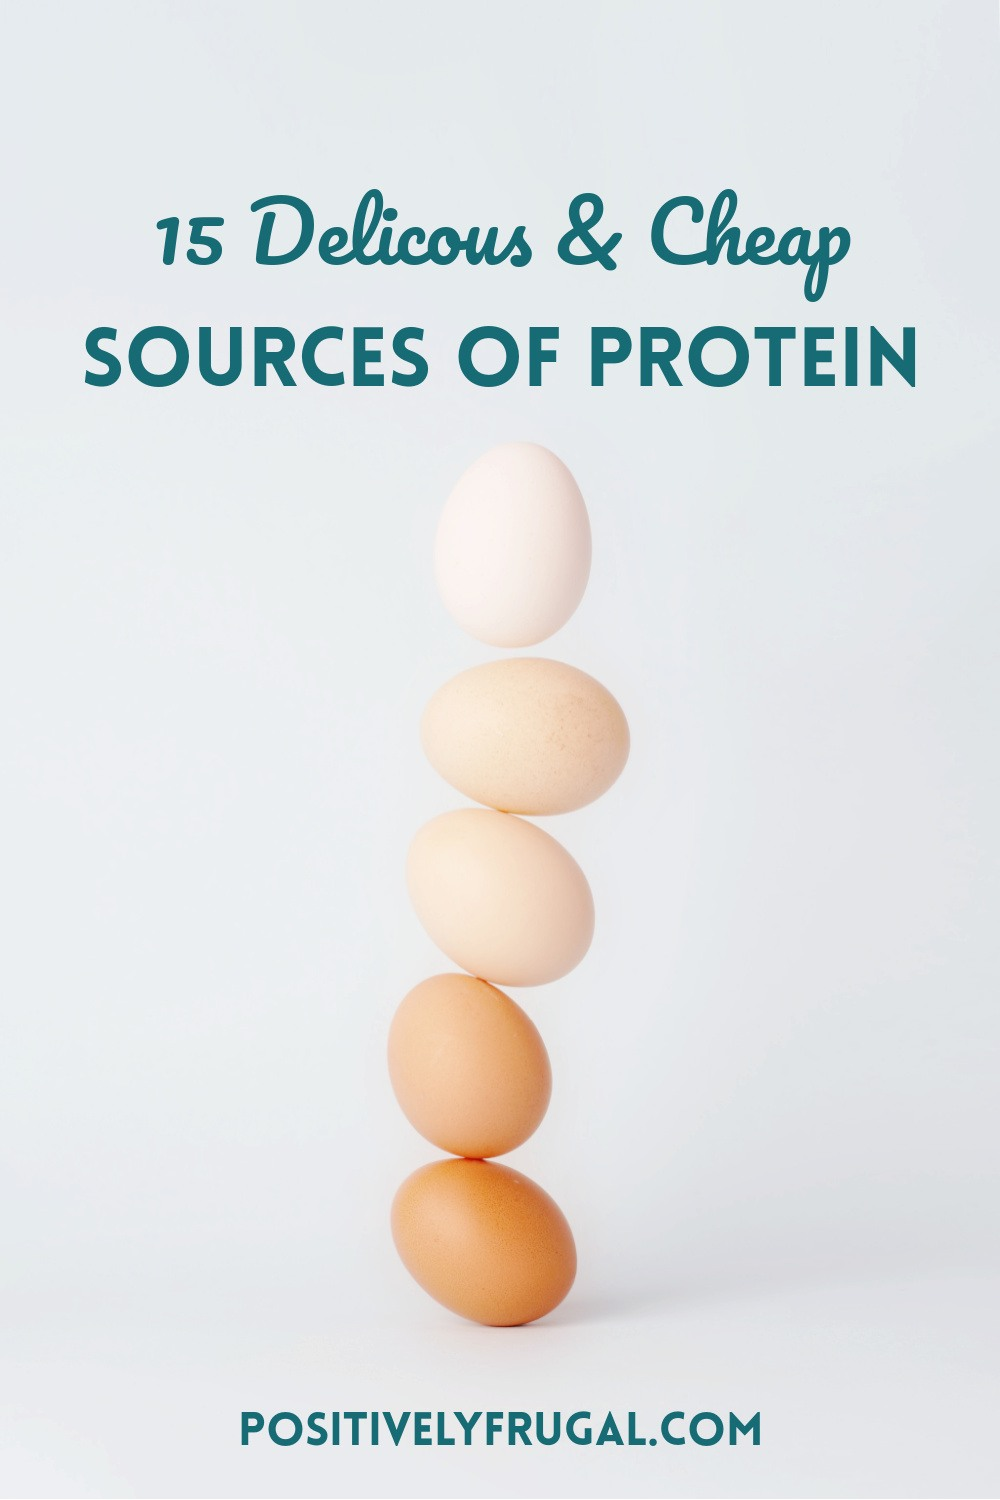 Delicious and Cheap Sources of Protein by PositivelyFrugal.com